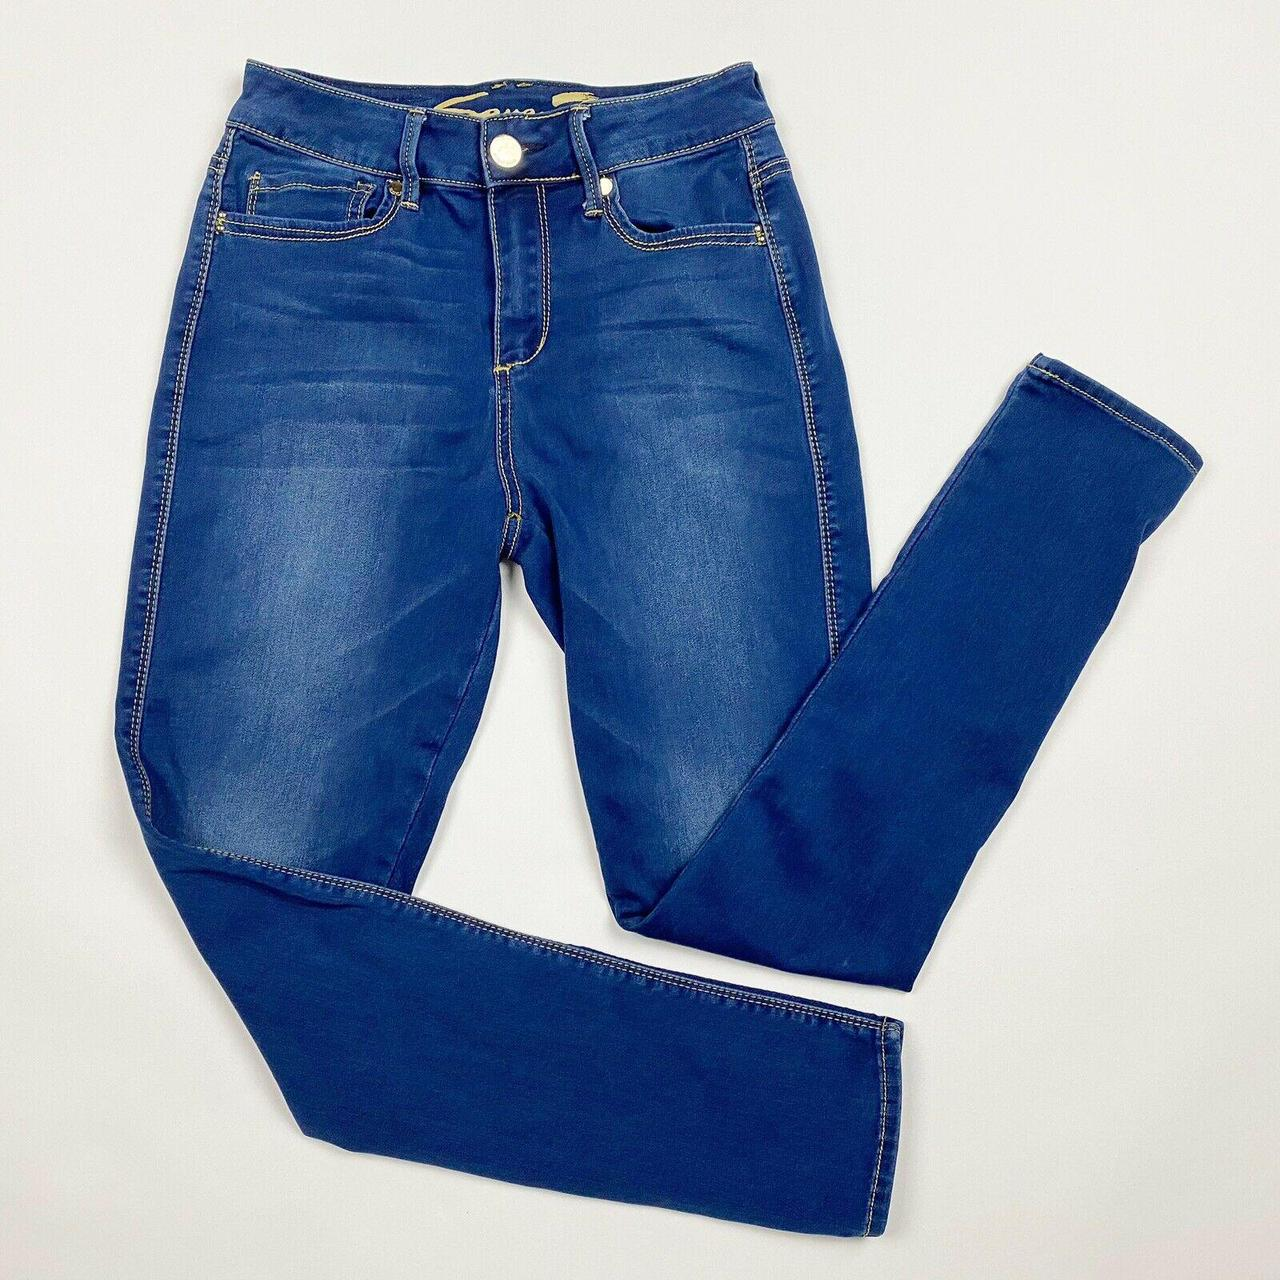 Product Image 1 - SEVEN7 High Rise Skinny Jeans